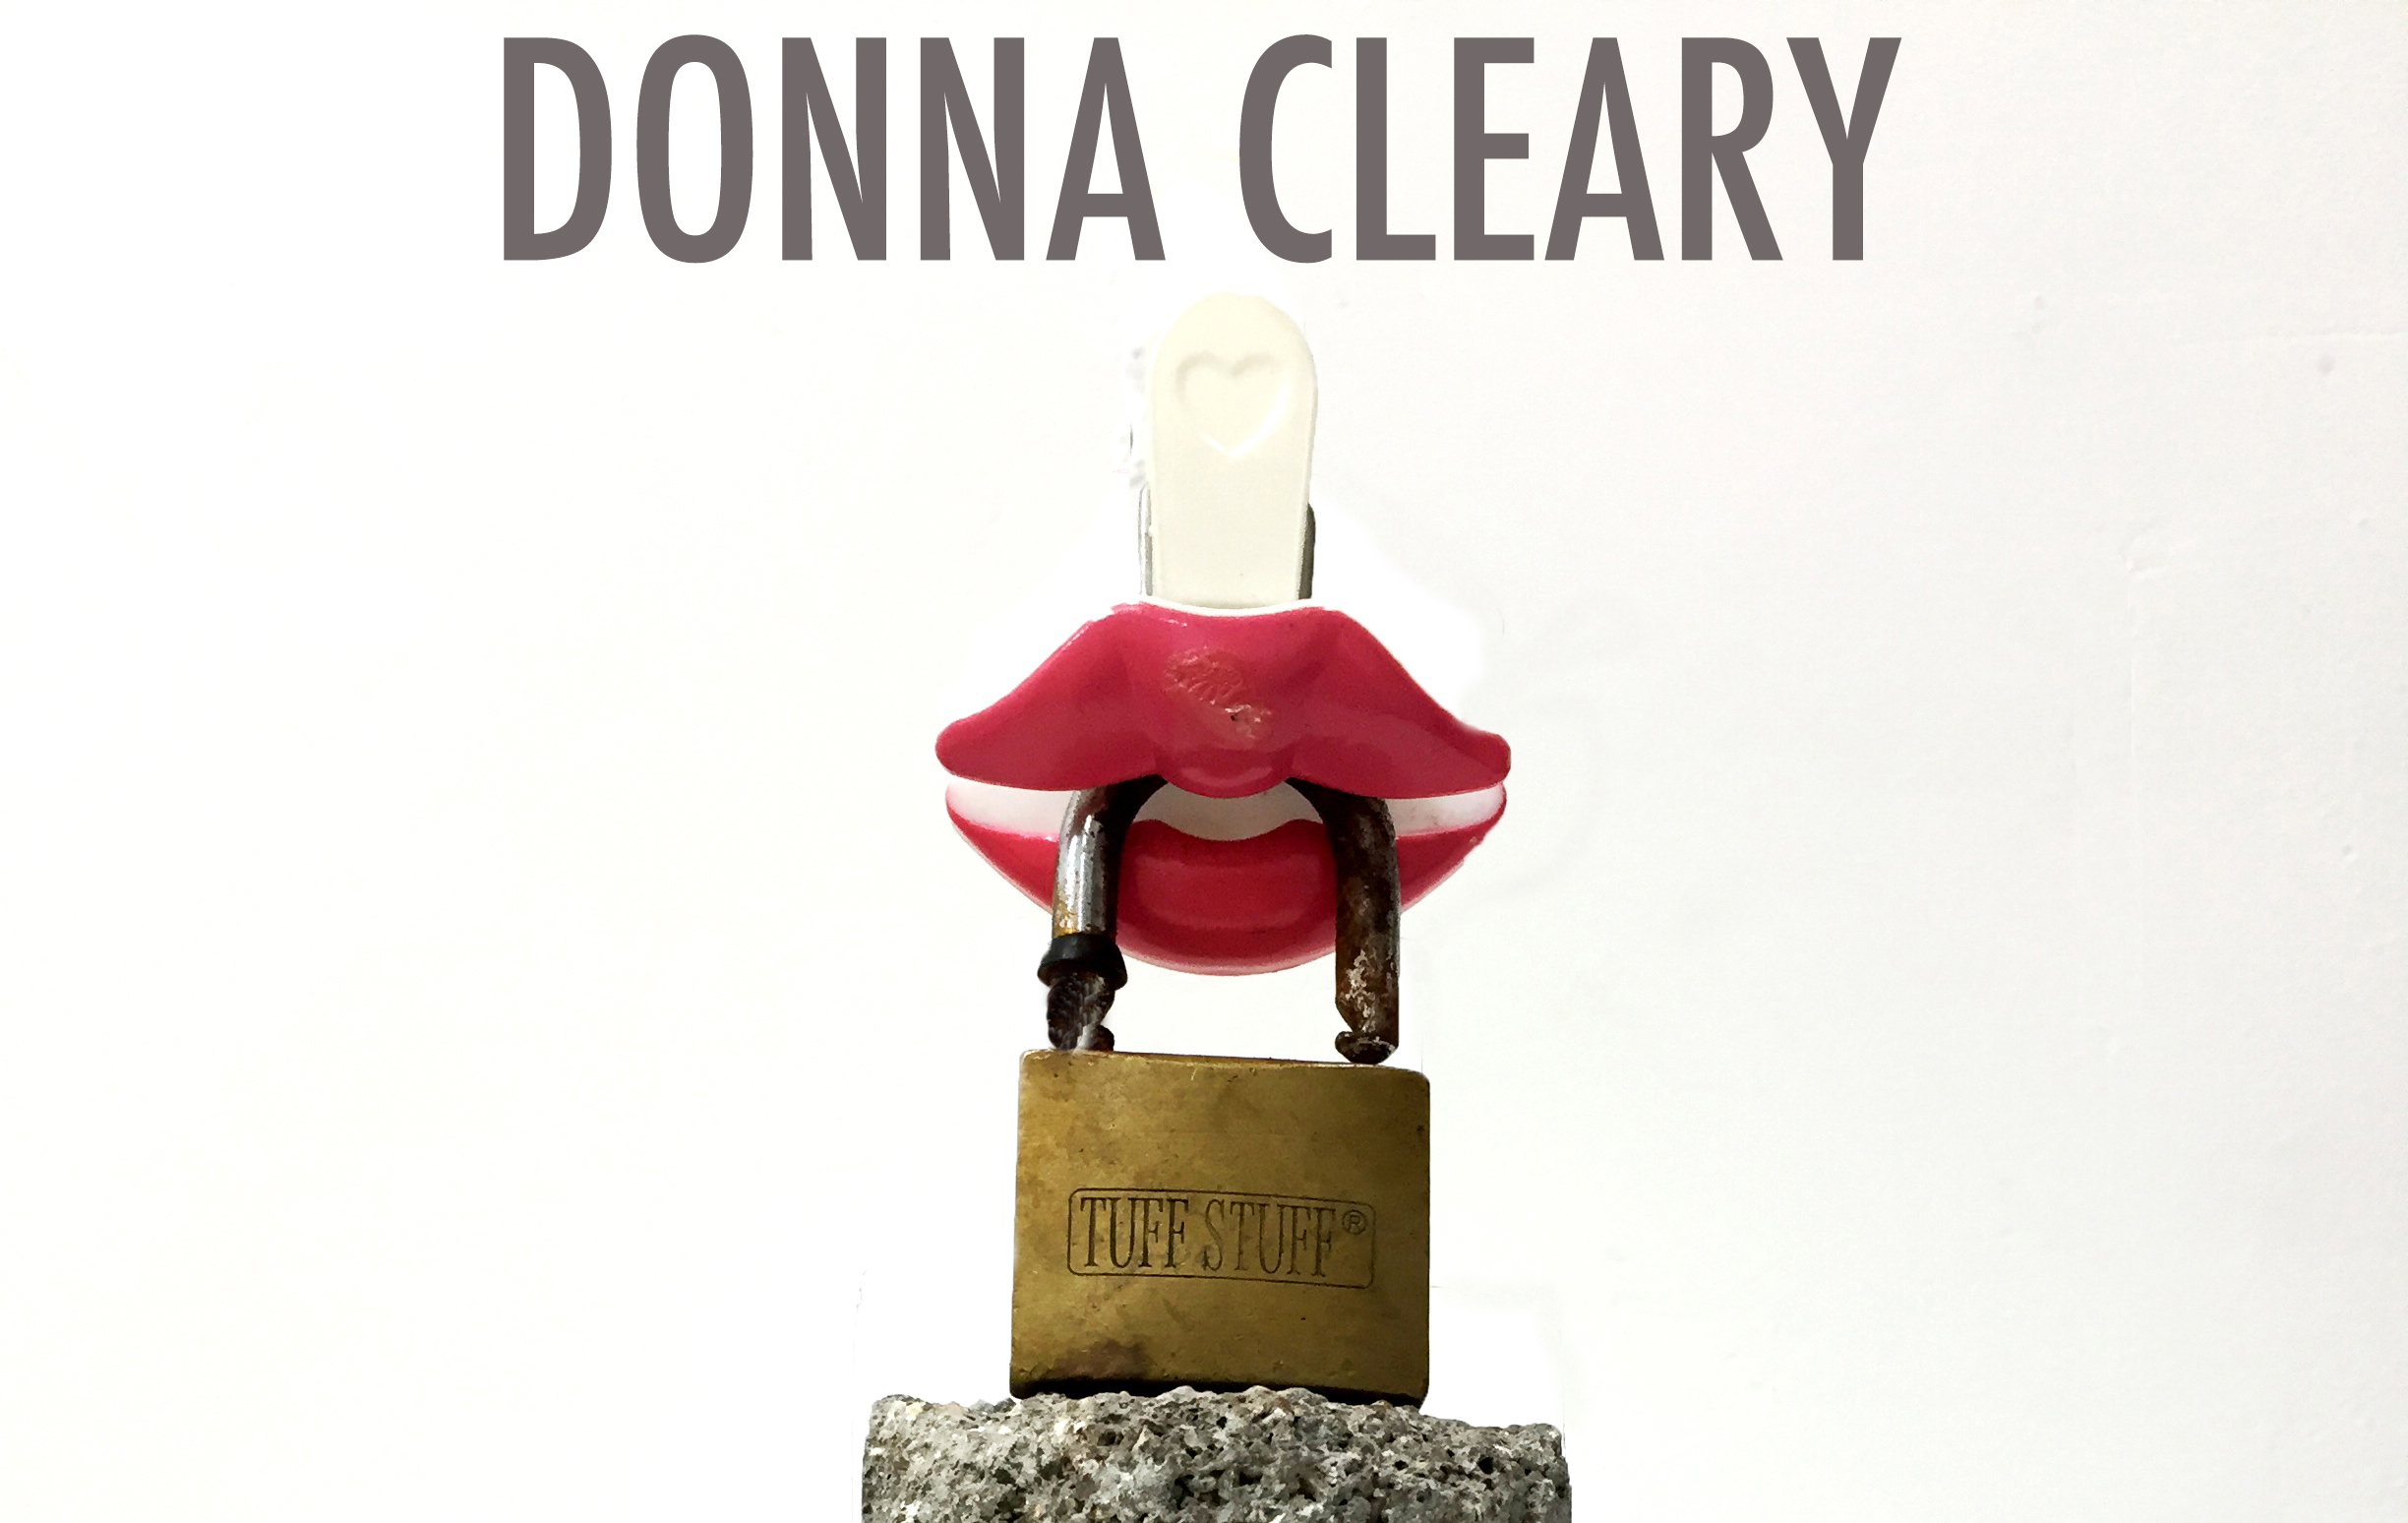 Donna Cleary